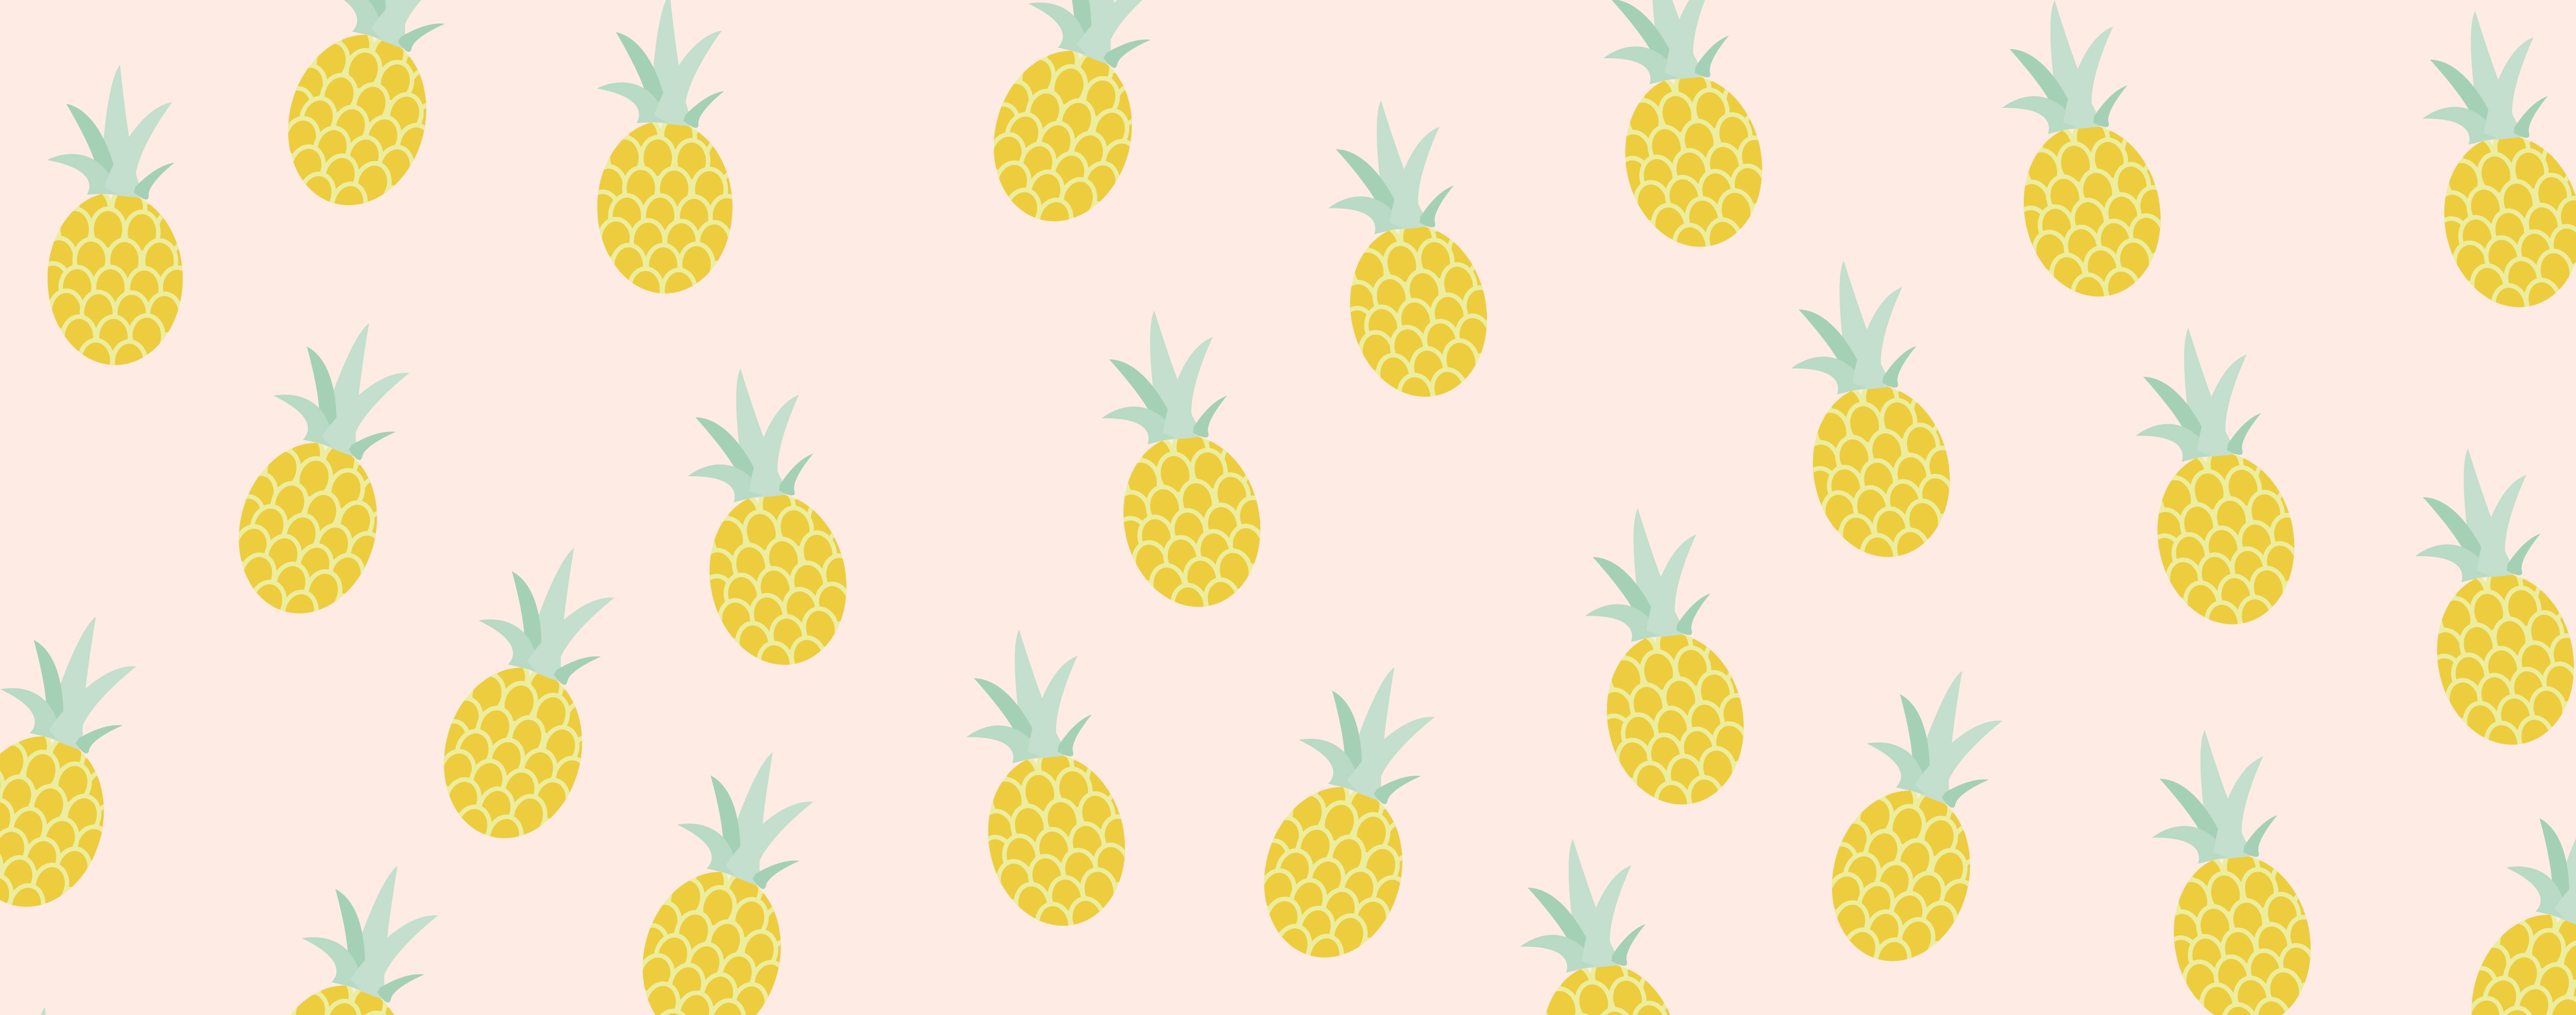 Pin by Katie Ann on Pineapple Party (With images